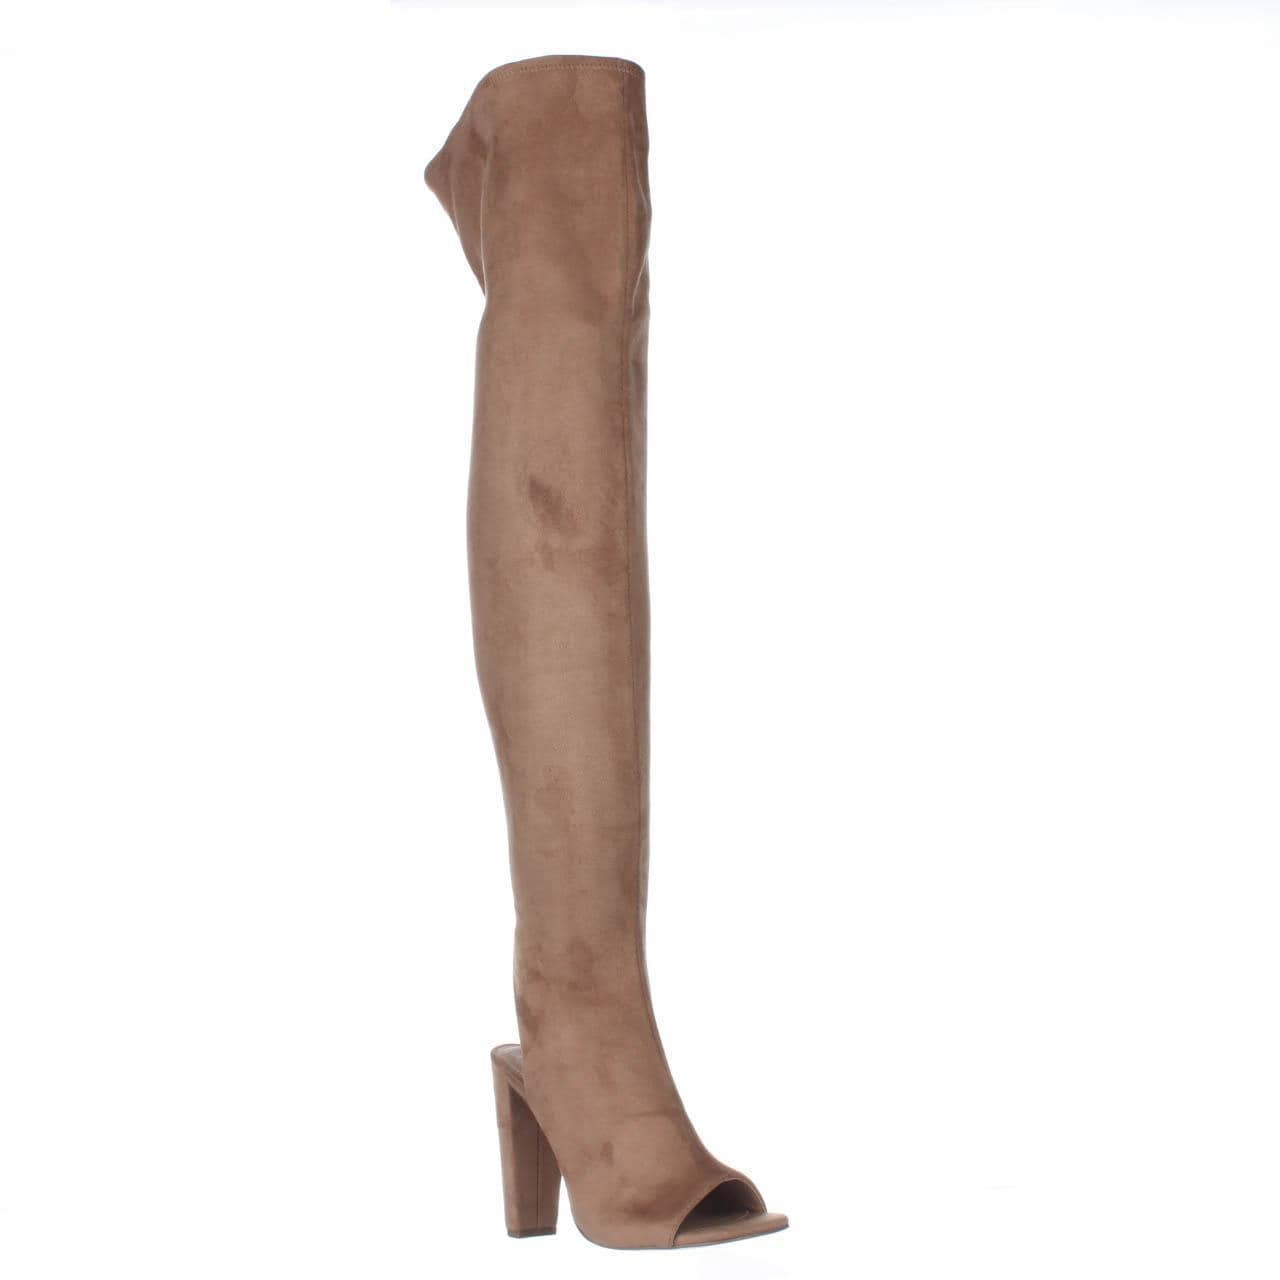 9e7bebd1b Shop Steve Madden Kimmi Over-The-Knee Open Heel Boots, Camel - Free  Shipping Today - Overstock - 19583499